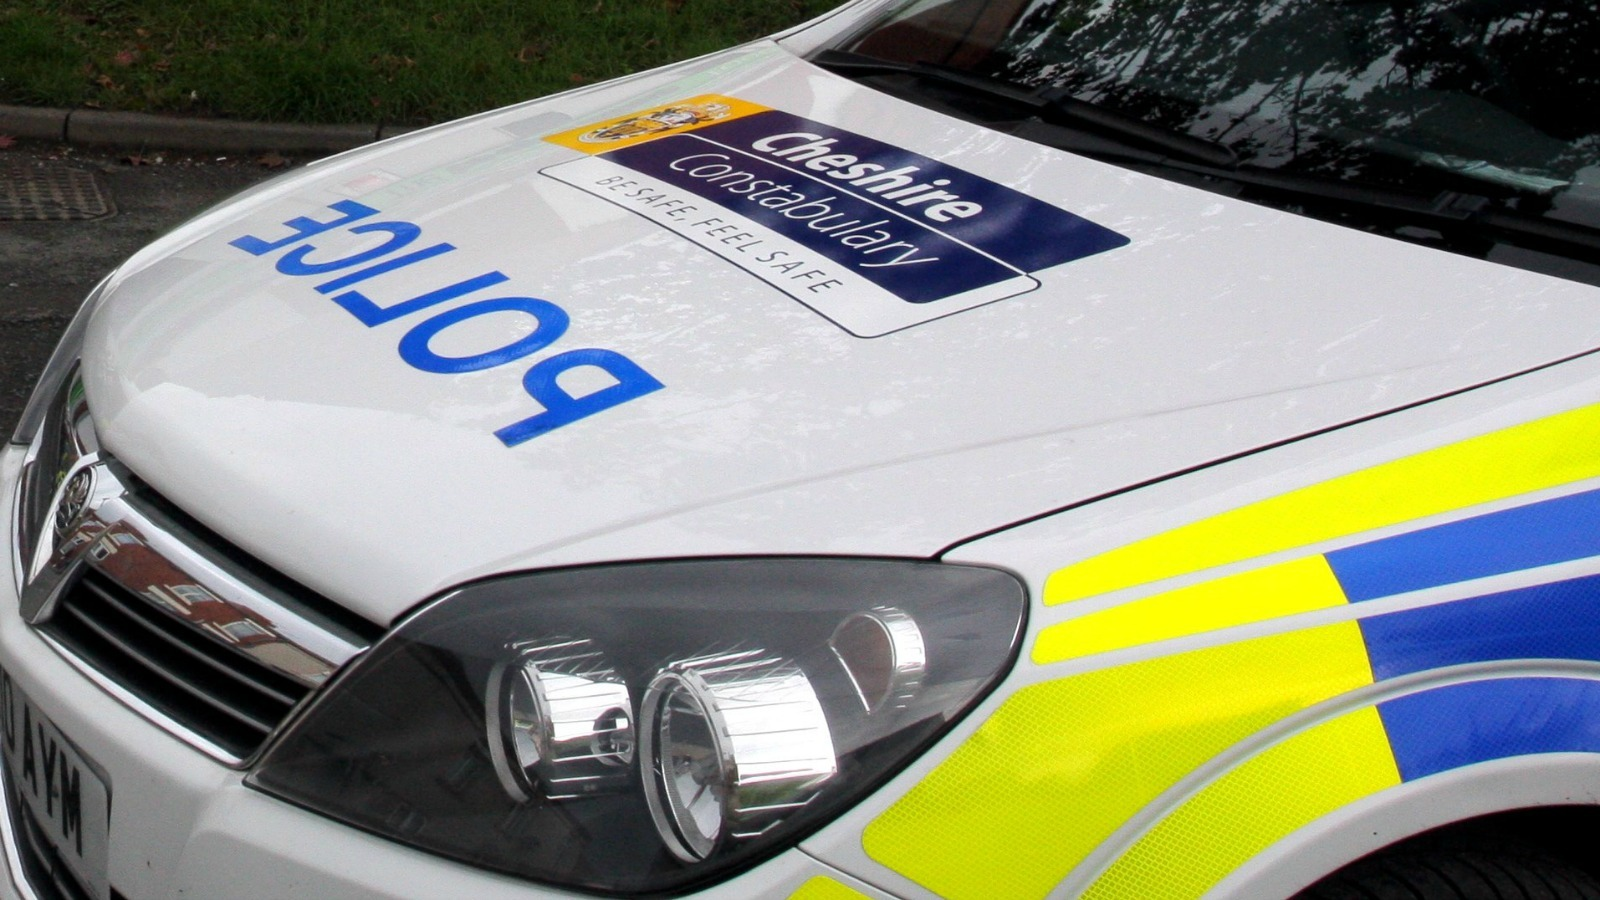 Wrexham man charged with causing death by dangerous driving in Cheshire